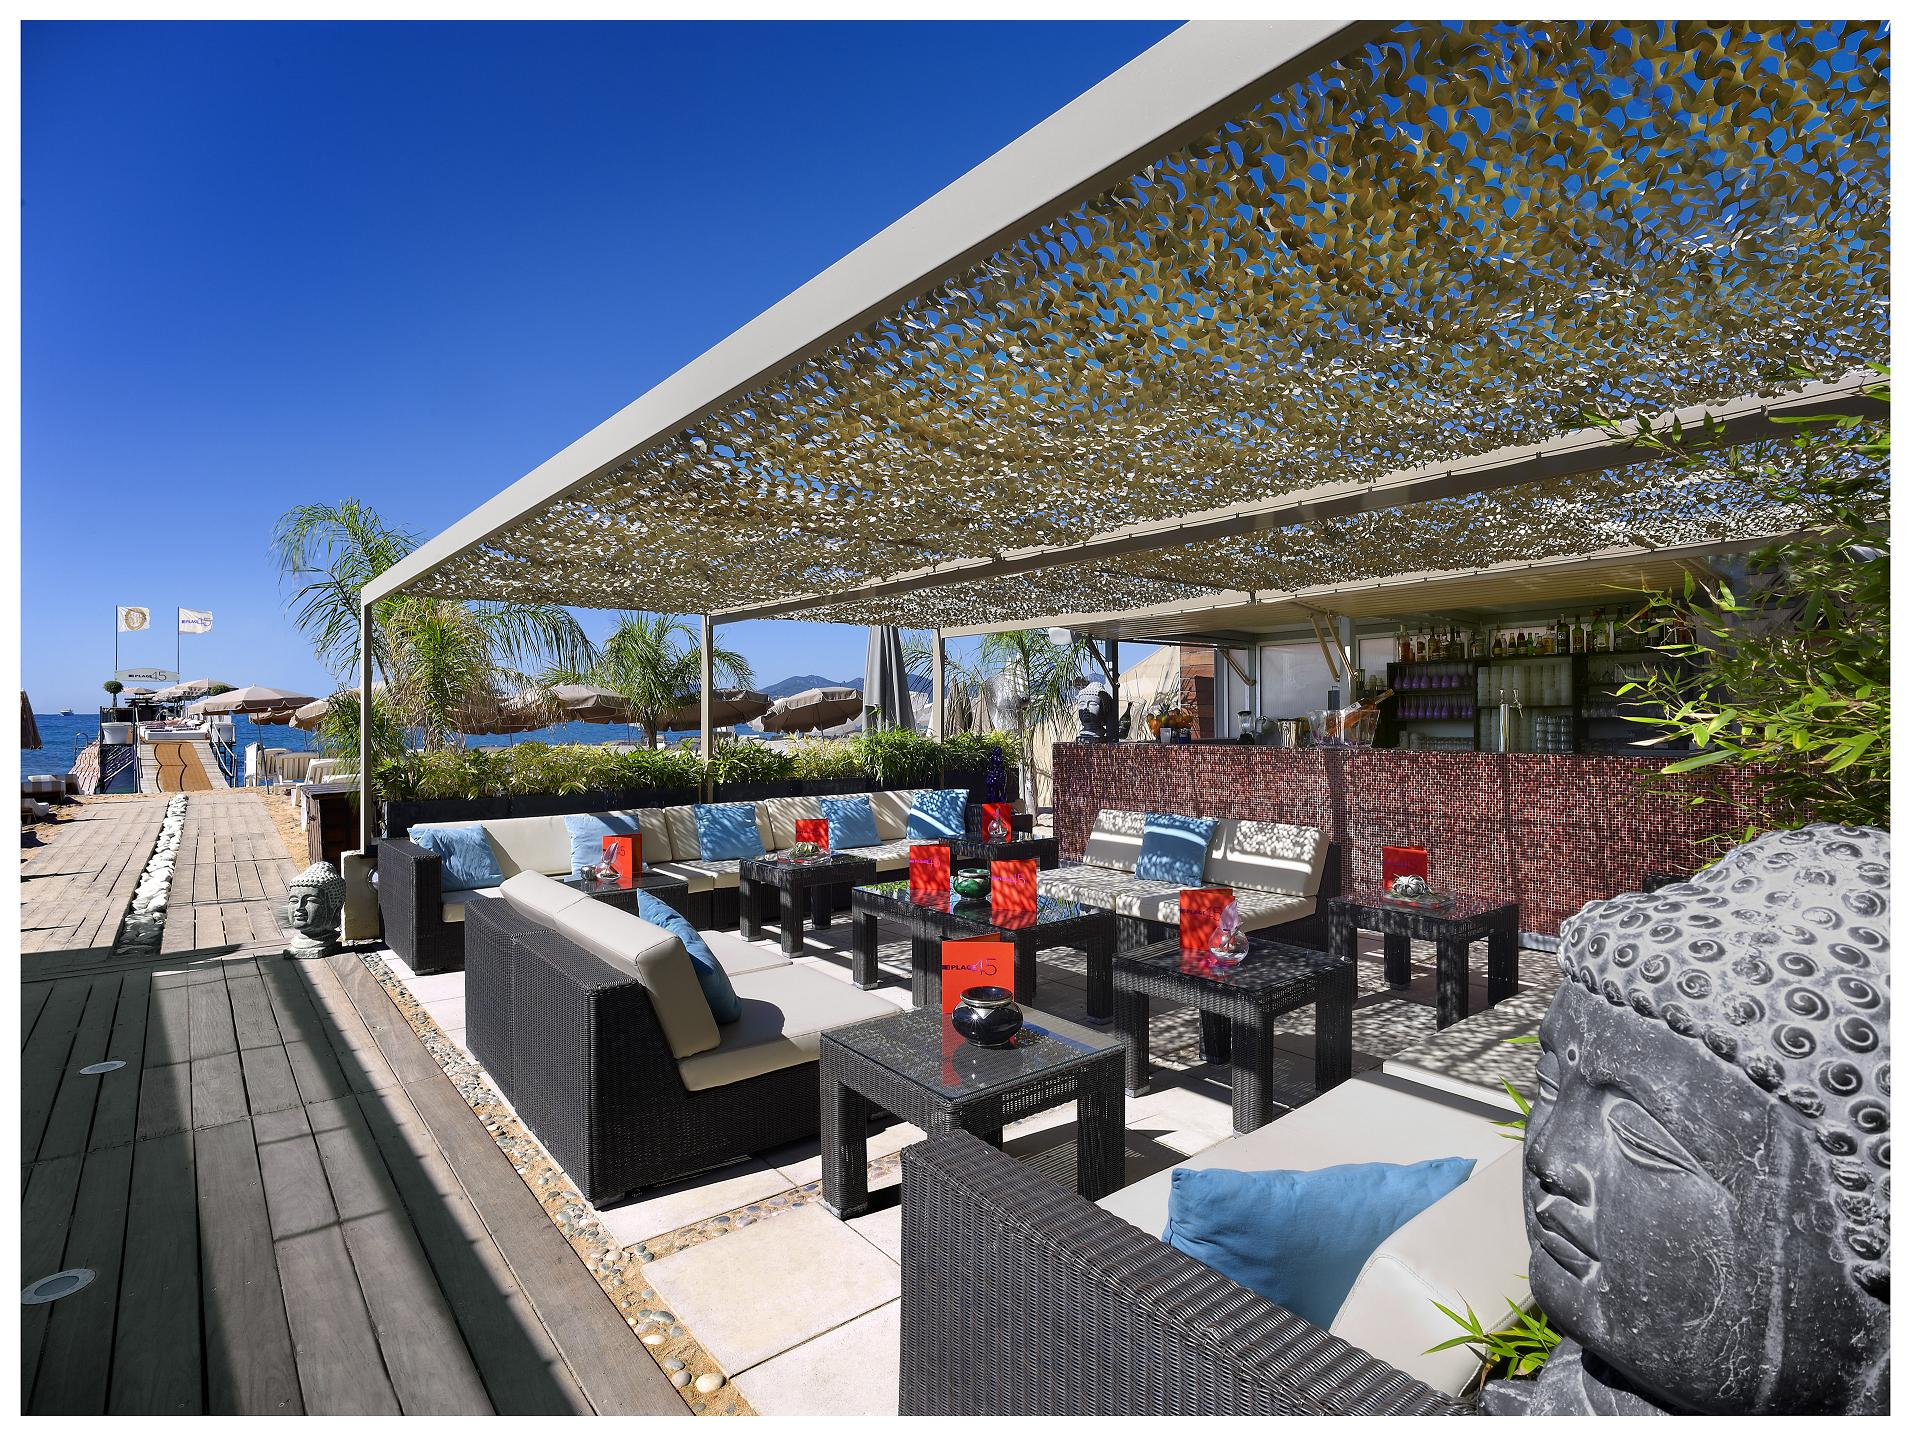 plages branchees- Plage 45 Grd Hotel (2)